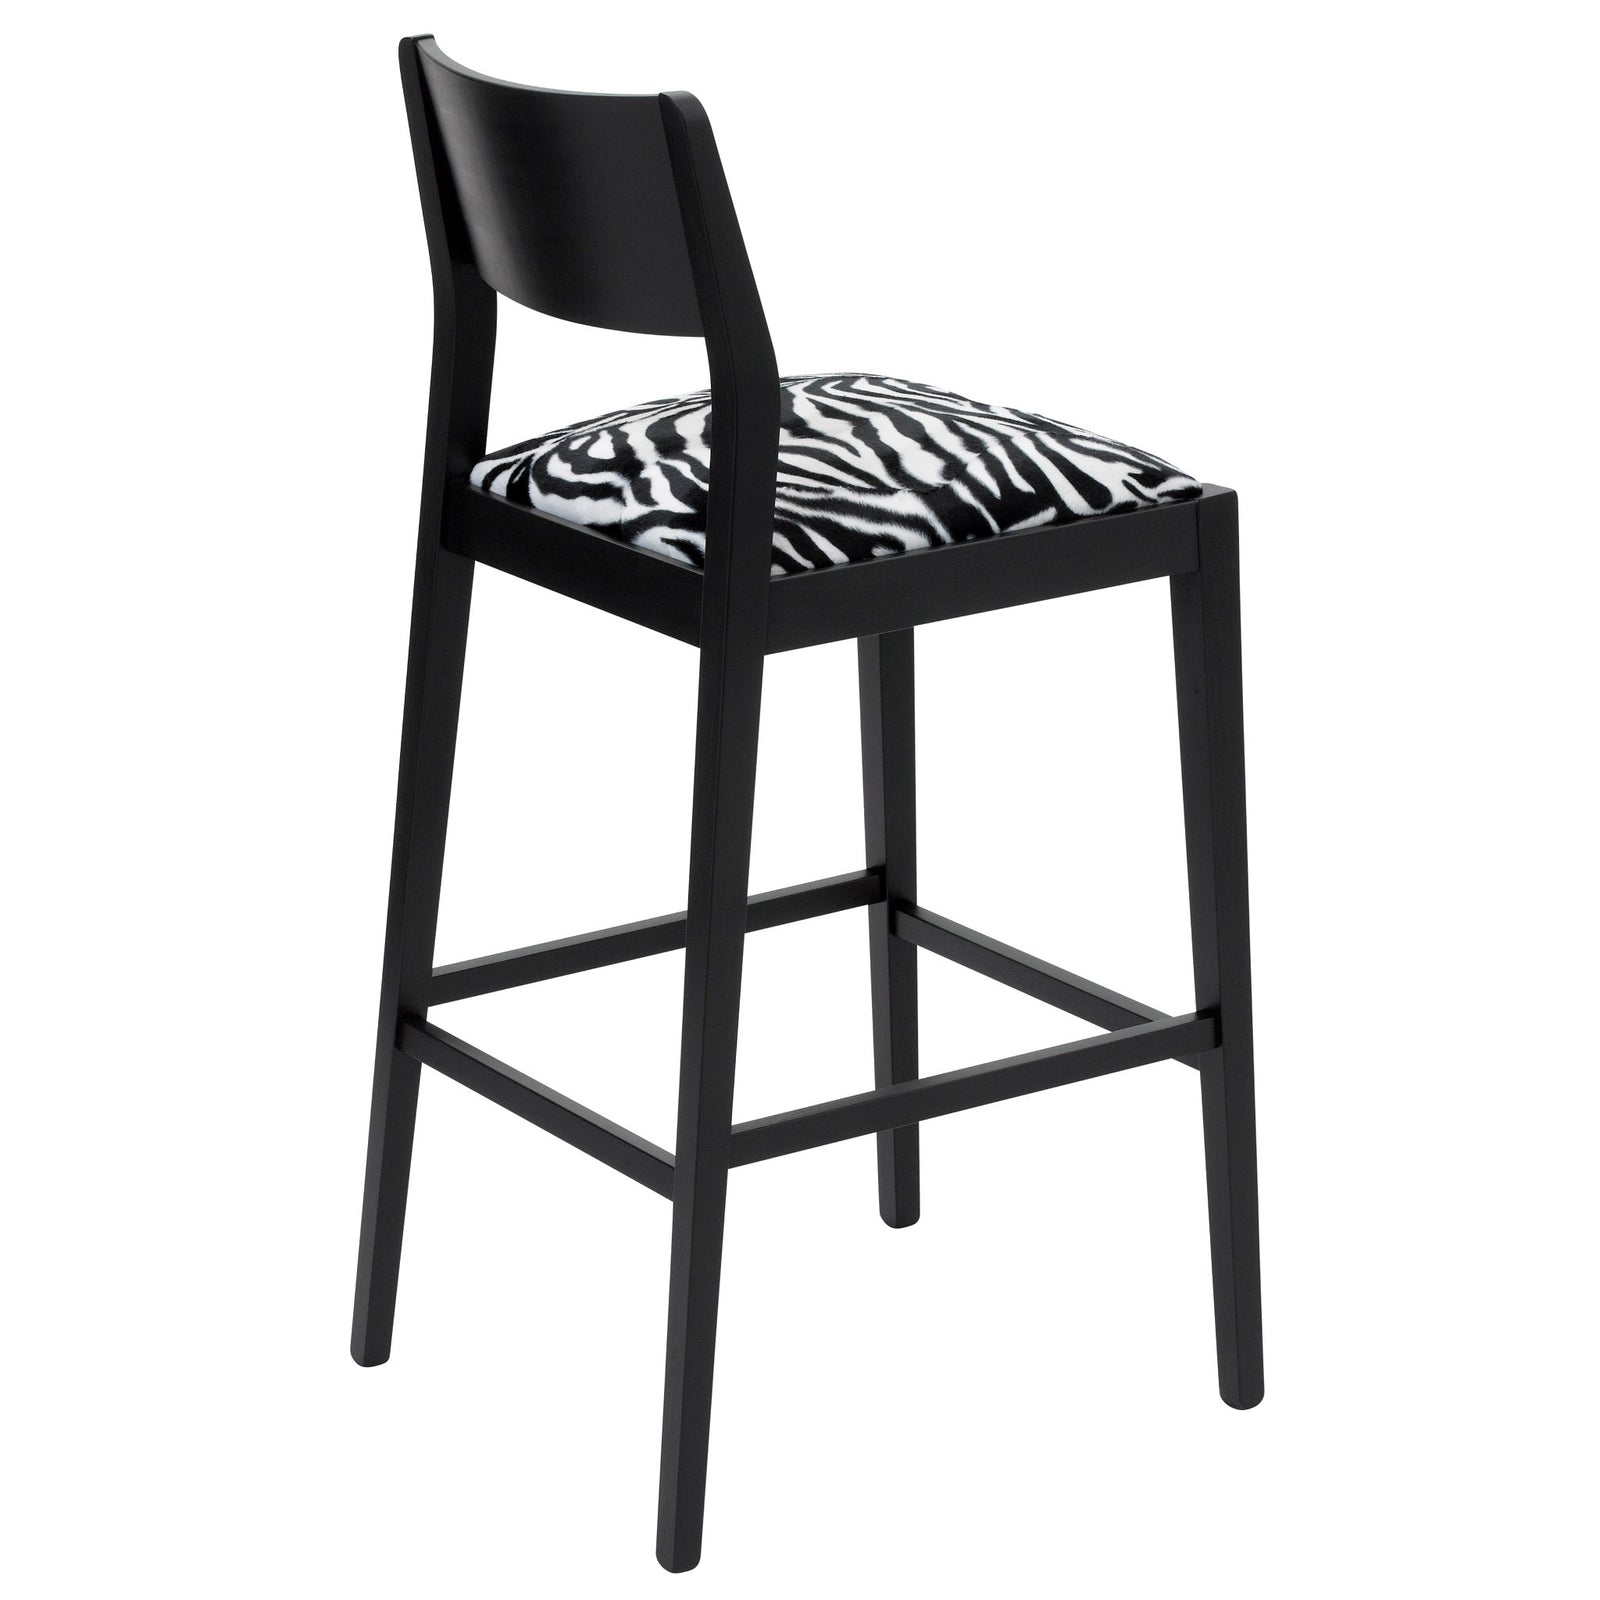 Rear view of the James designer bar stool upholstered in Zebra Faux fur and finished in Matte Black.